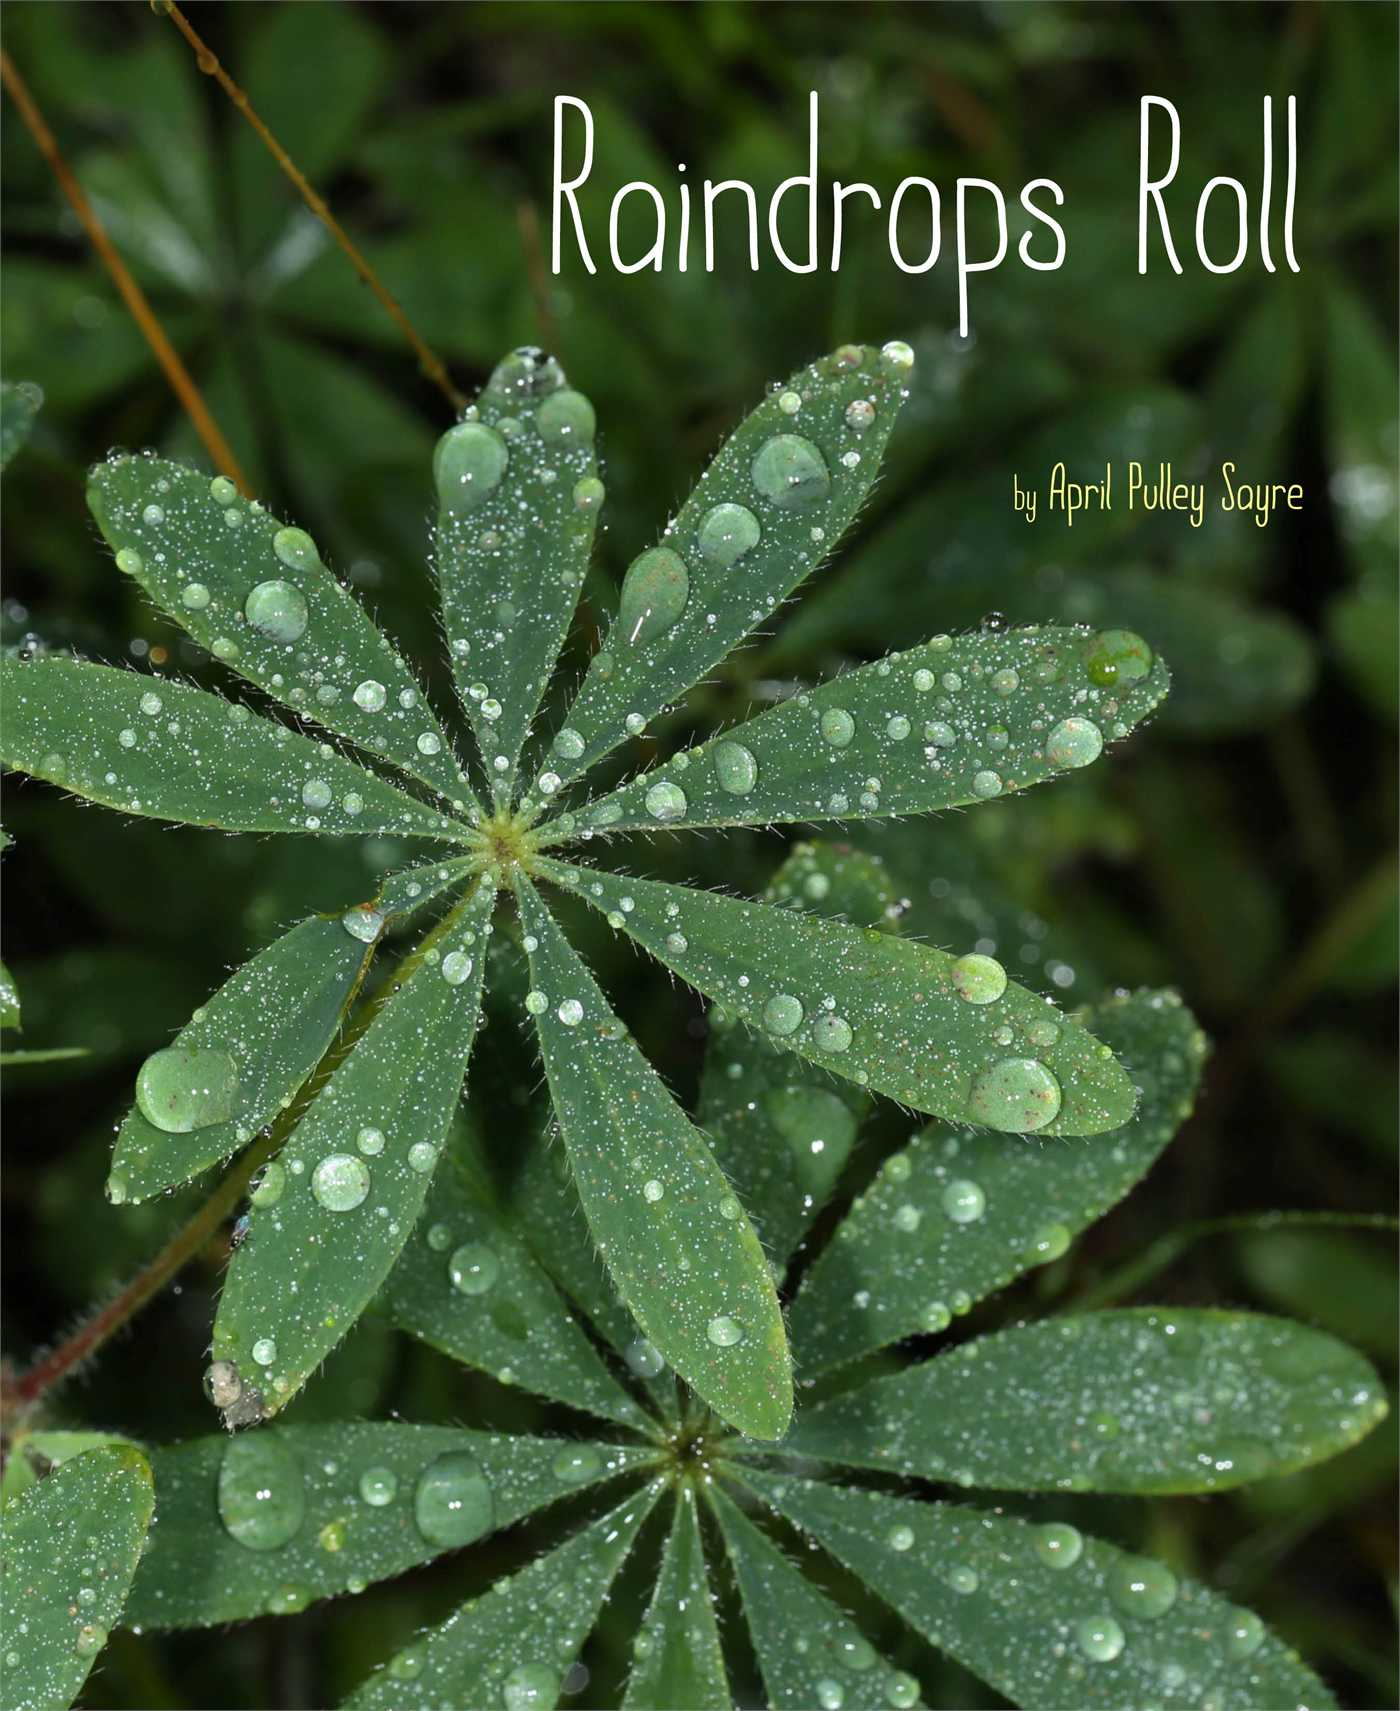 Raindrops-roll-9781481420648_hr